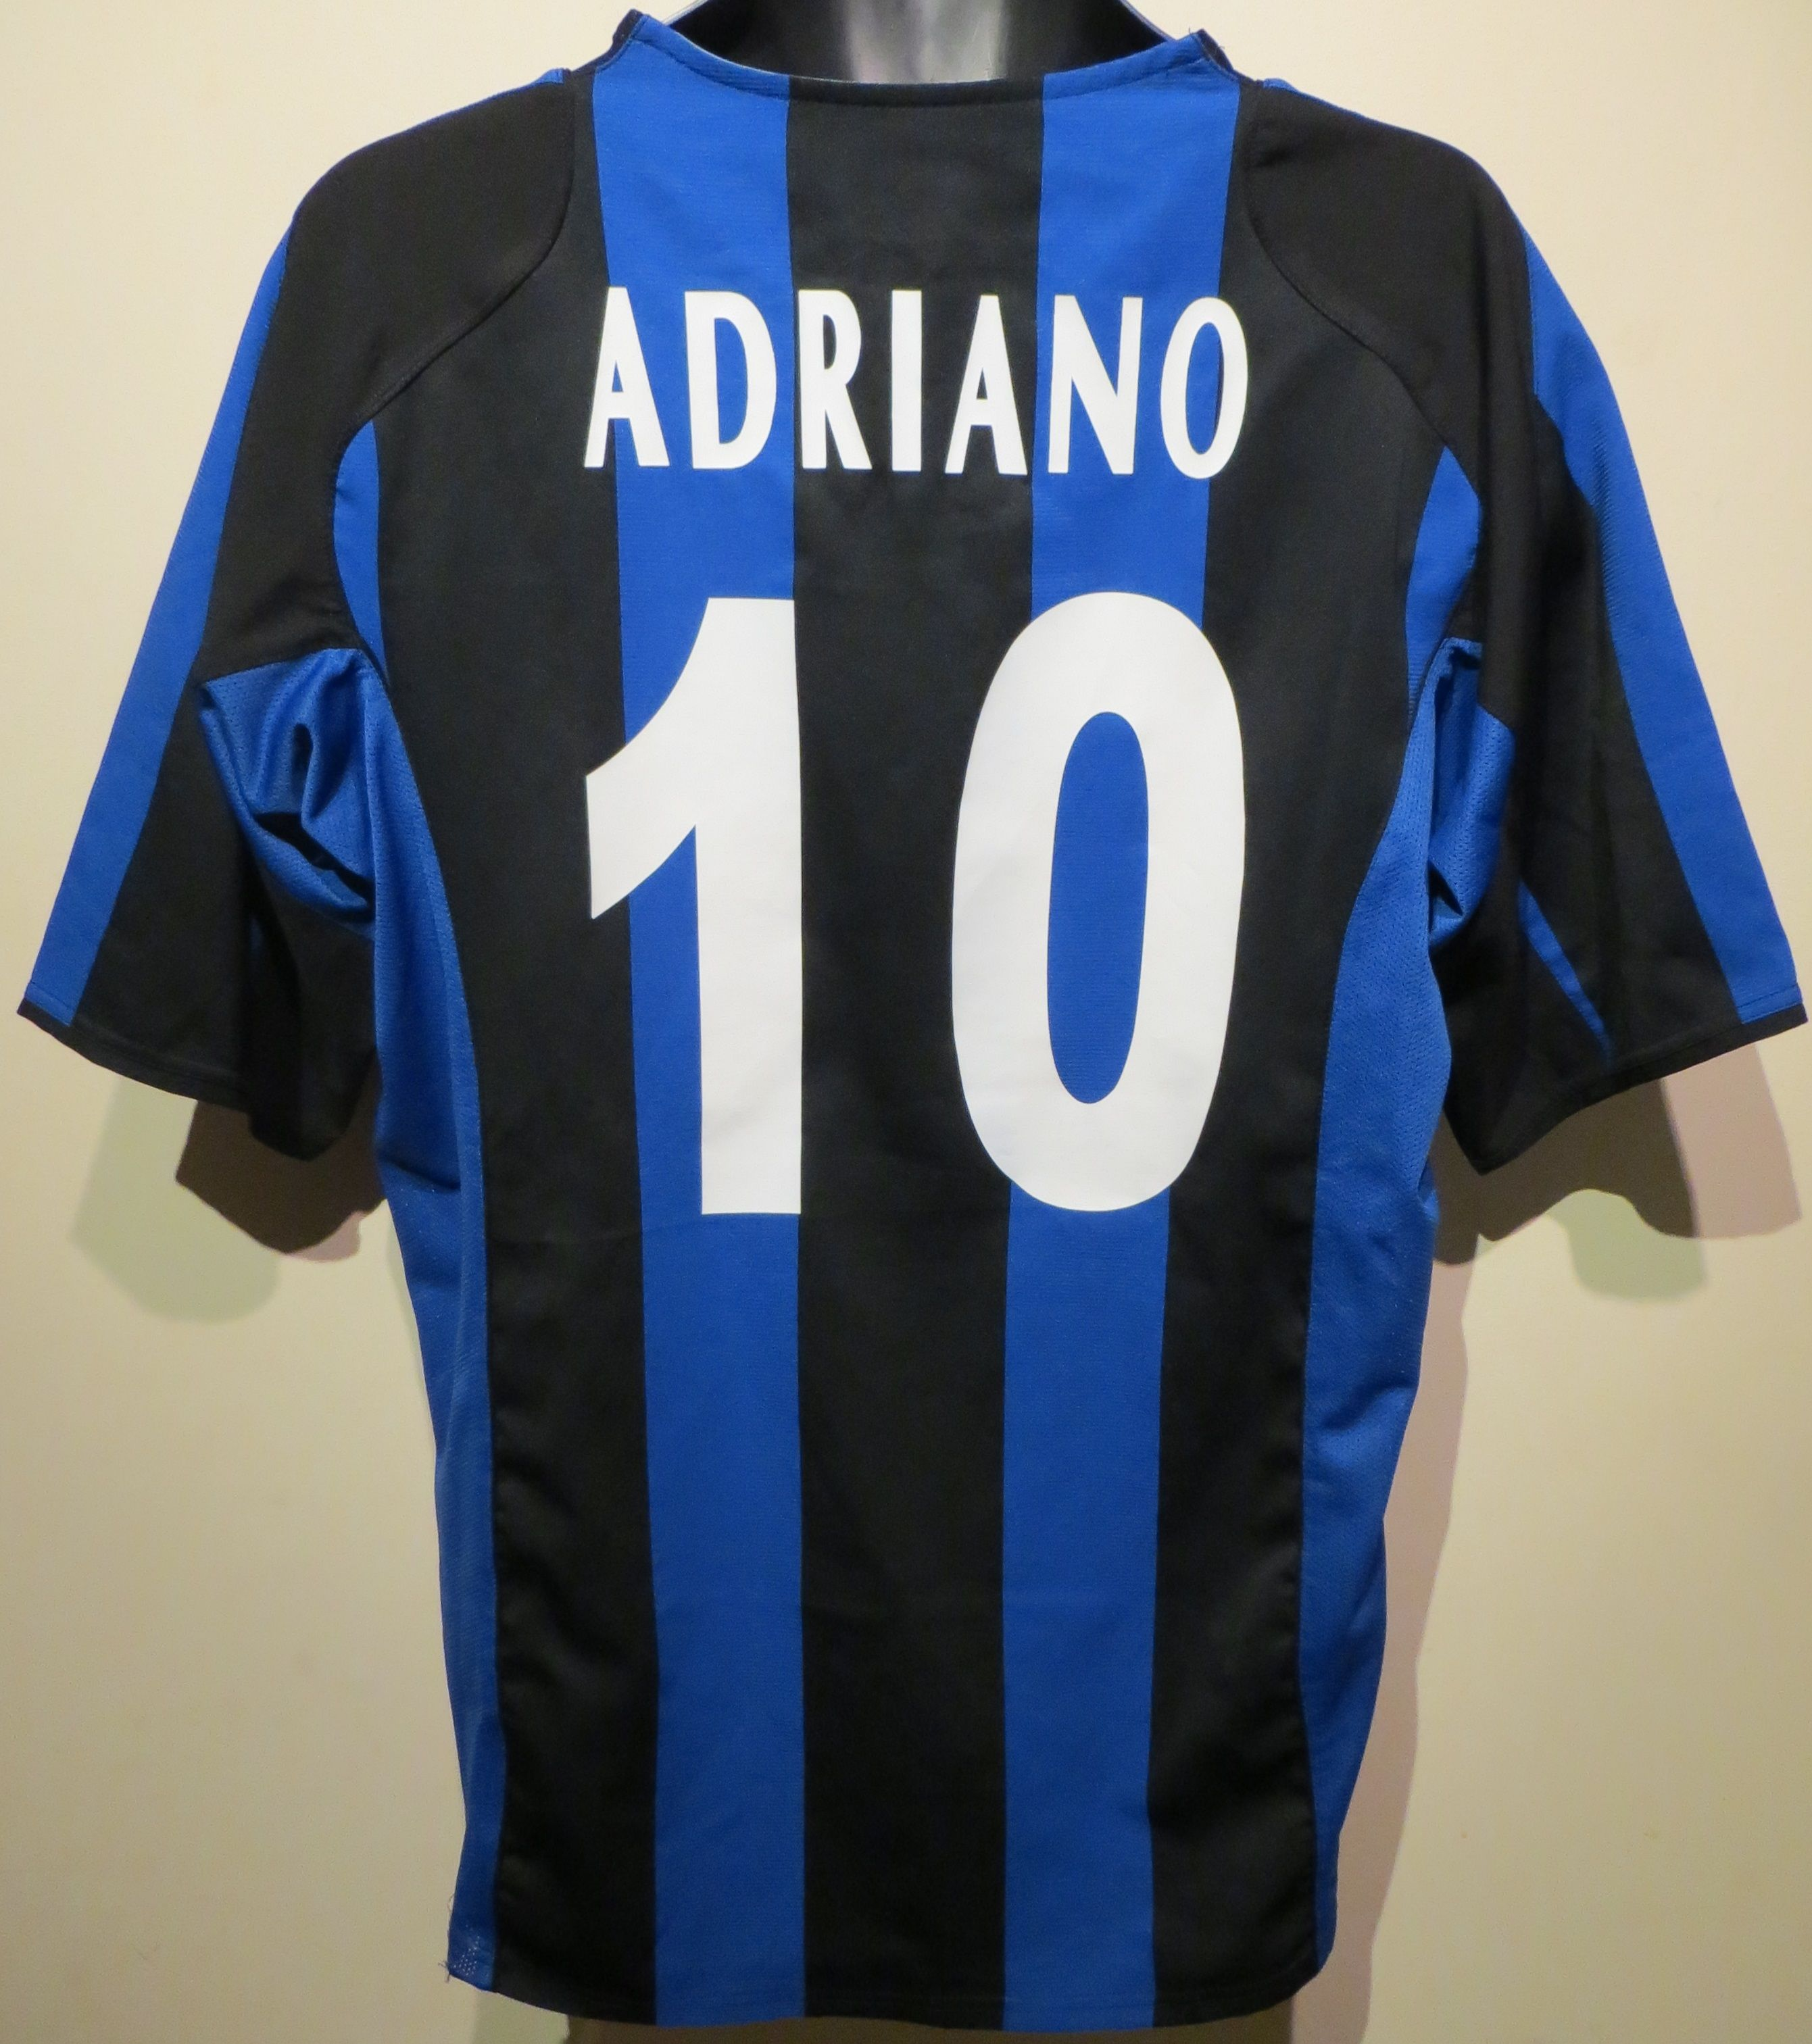 official photos 2b4ed a72d1 Adriano Inter Milan shirt by Nike (rear), a great player ...